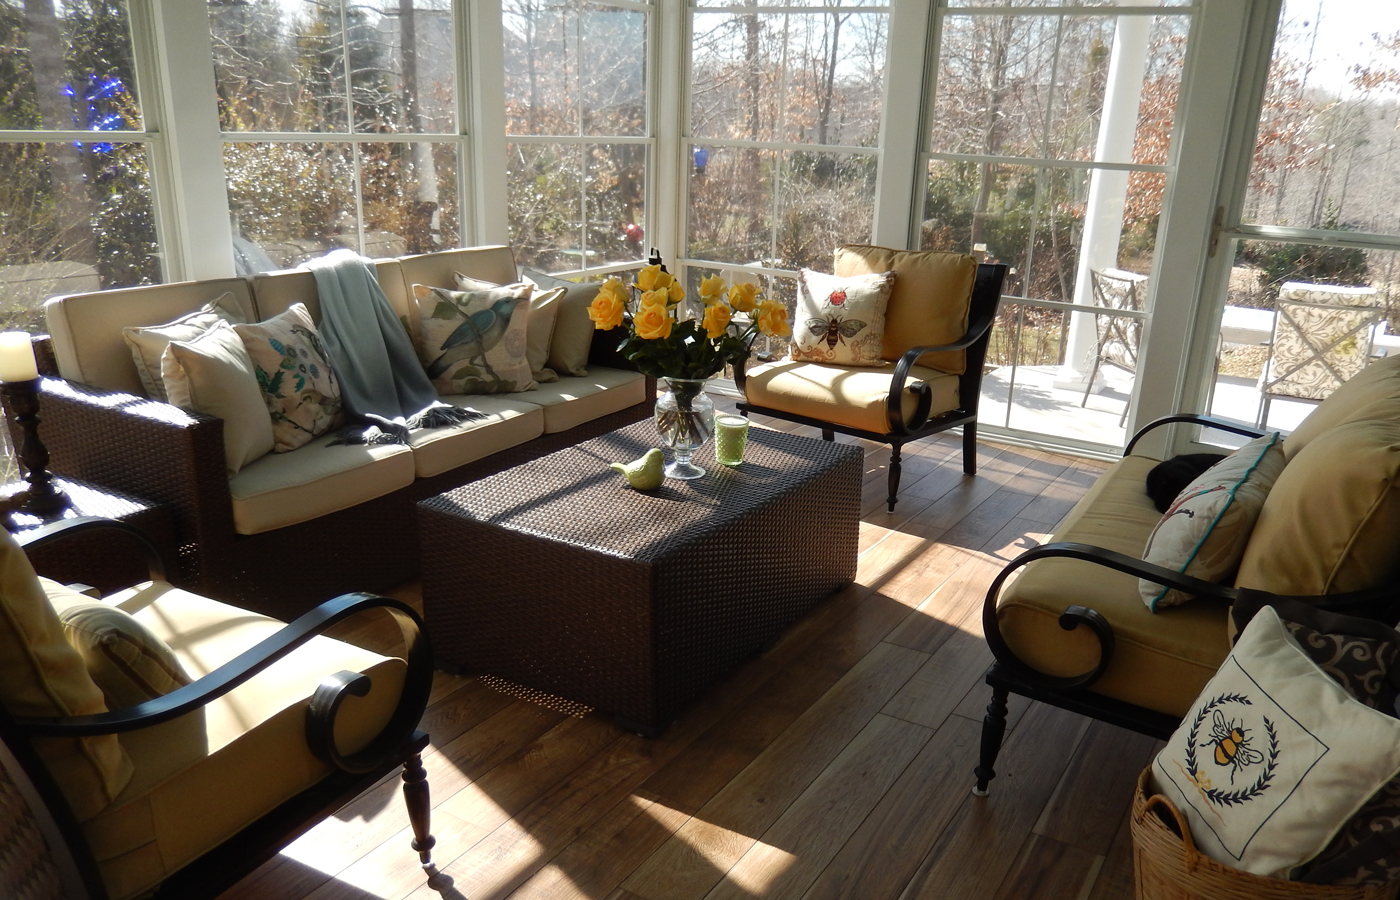 3 Season Room Furniture How To Choose An Oakville Outdoor Room: Sunrooms, Three